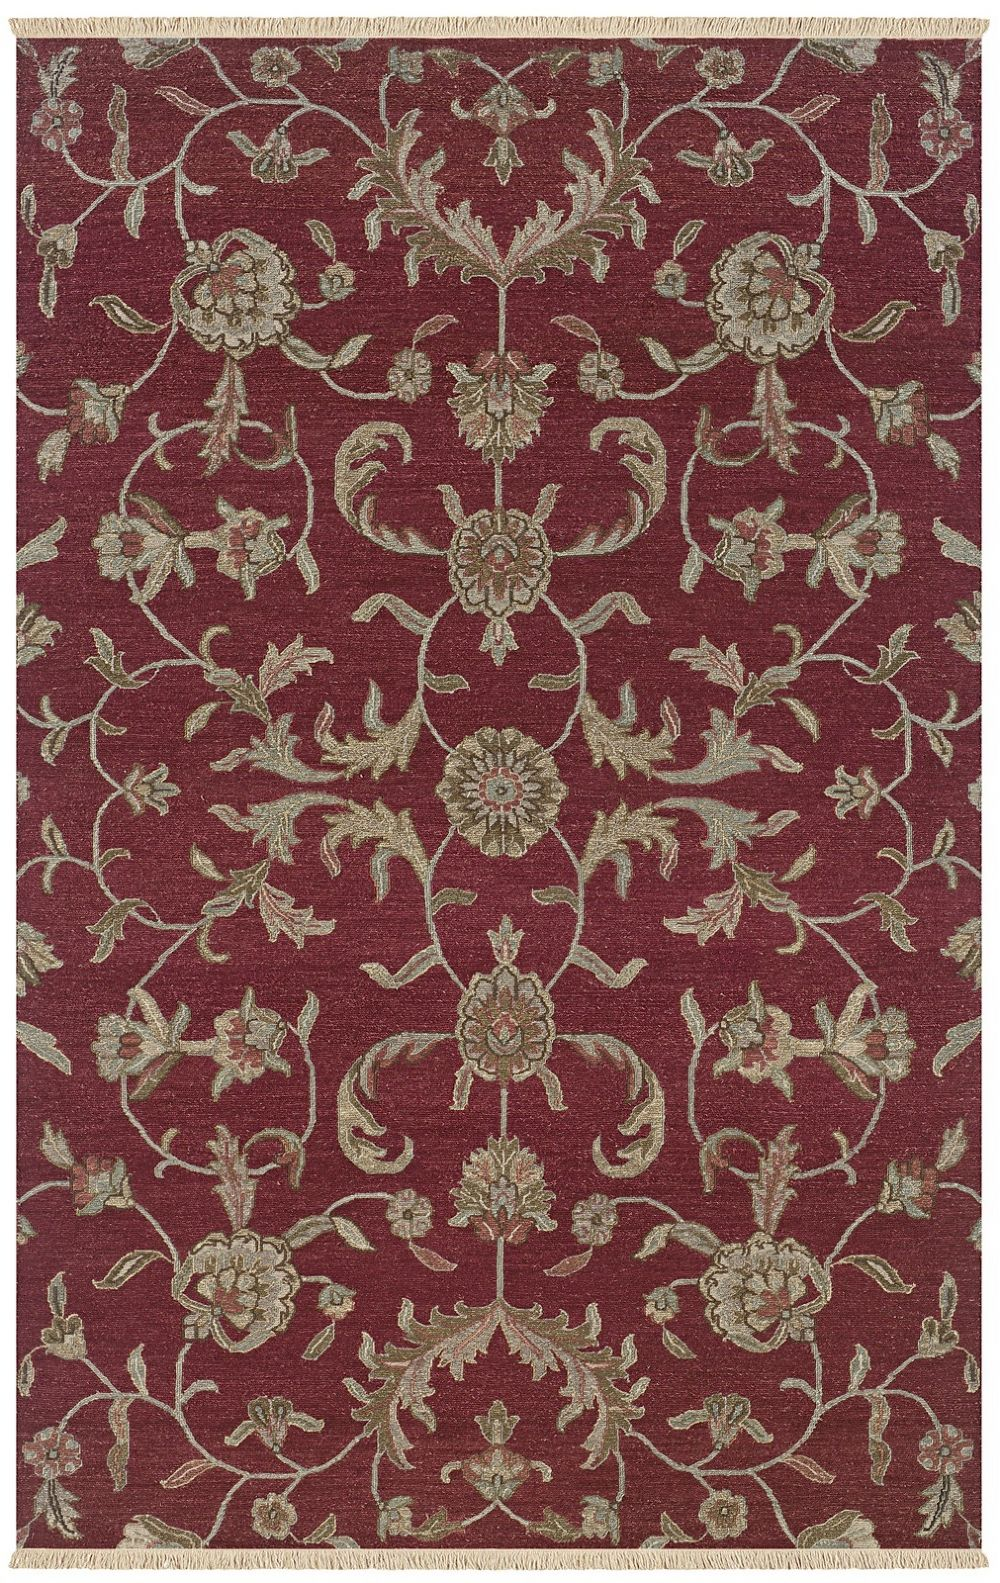 rizzy rugs elegance country & floral area rug collection